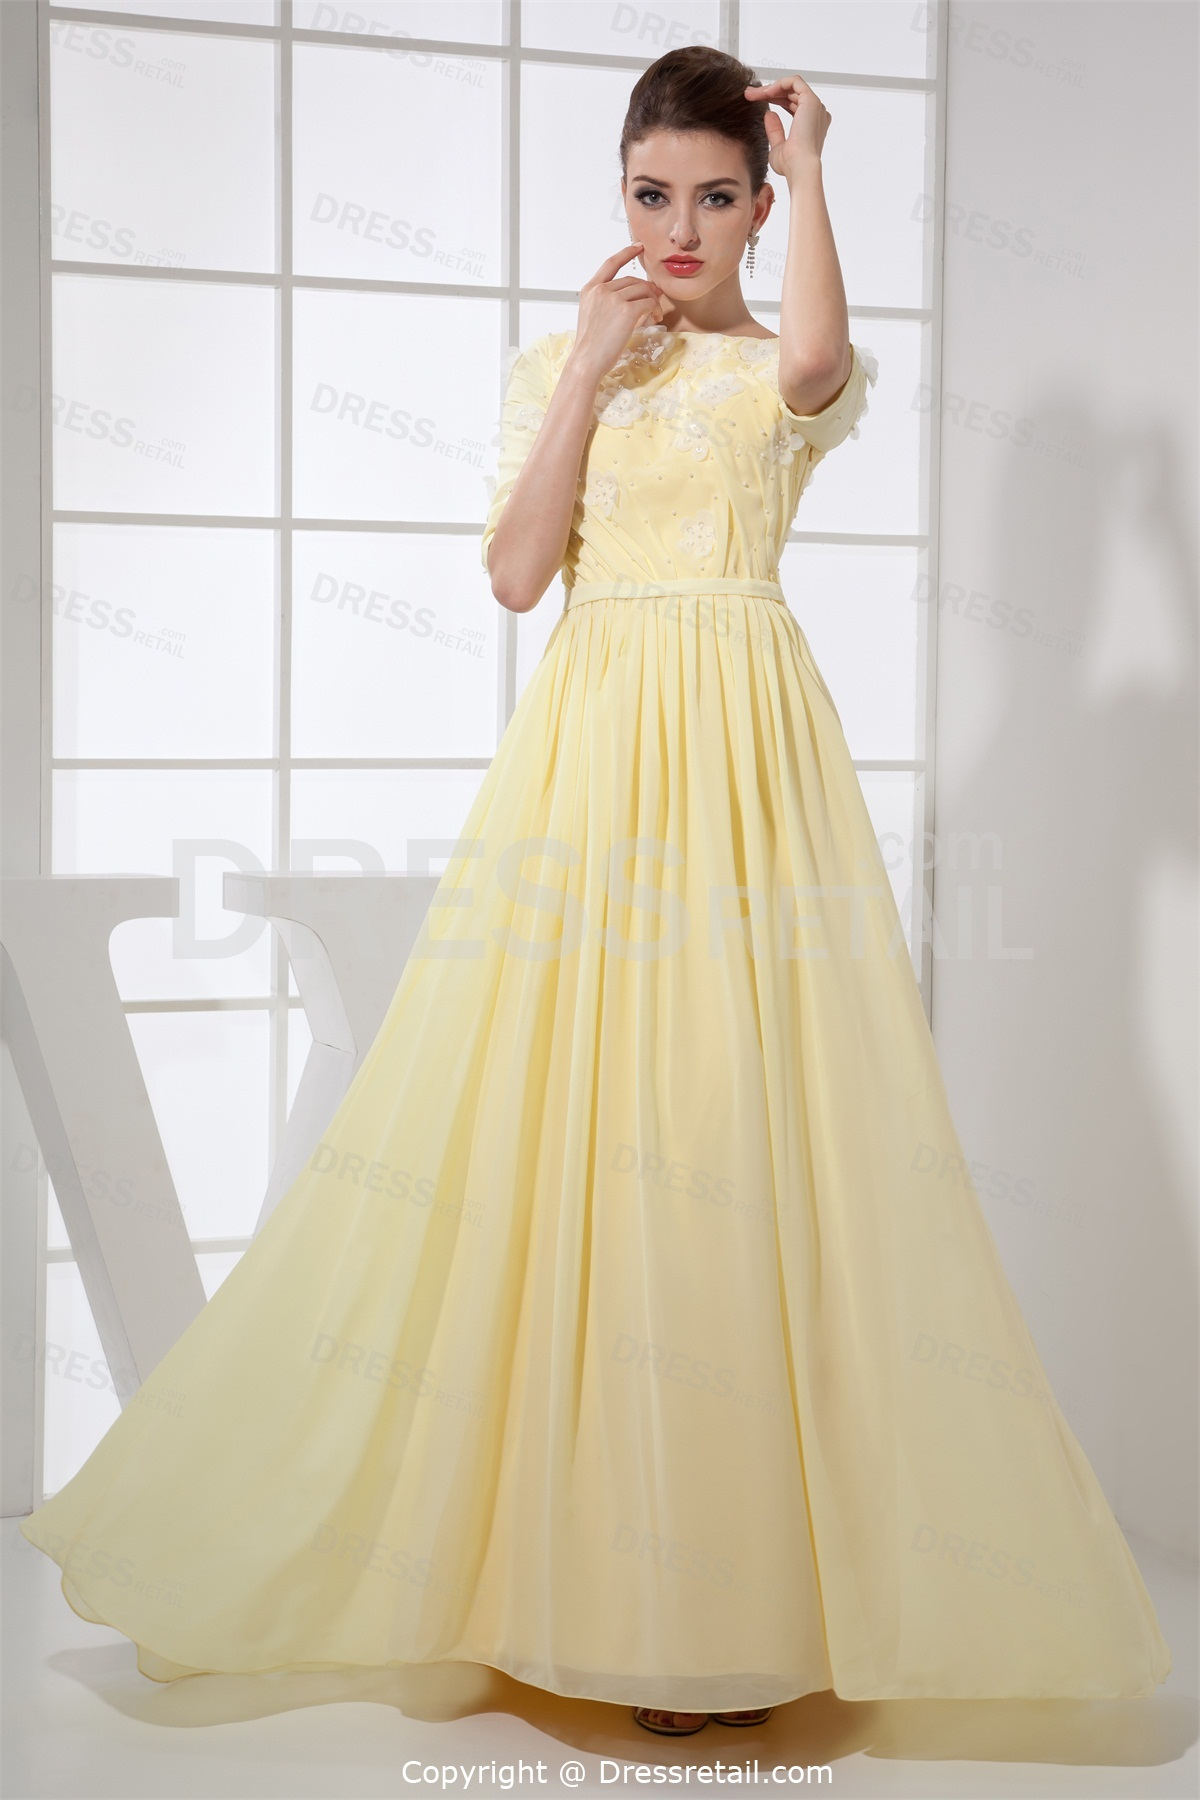 Half Sleeve Light Yellow Dresses